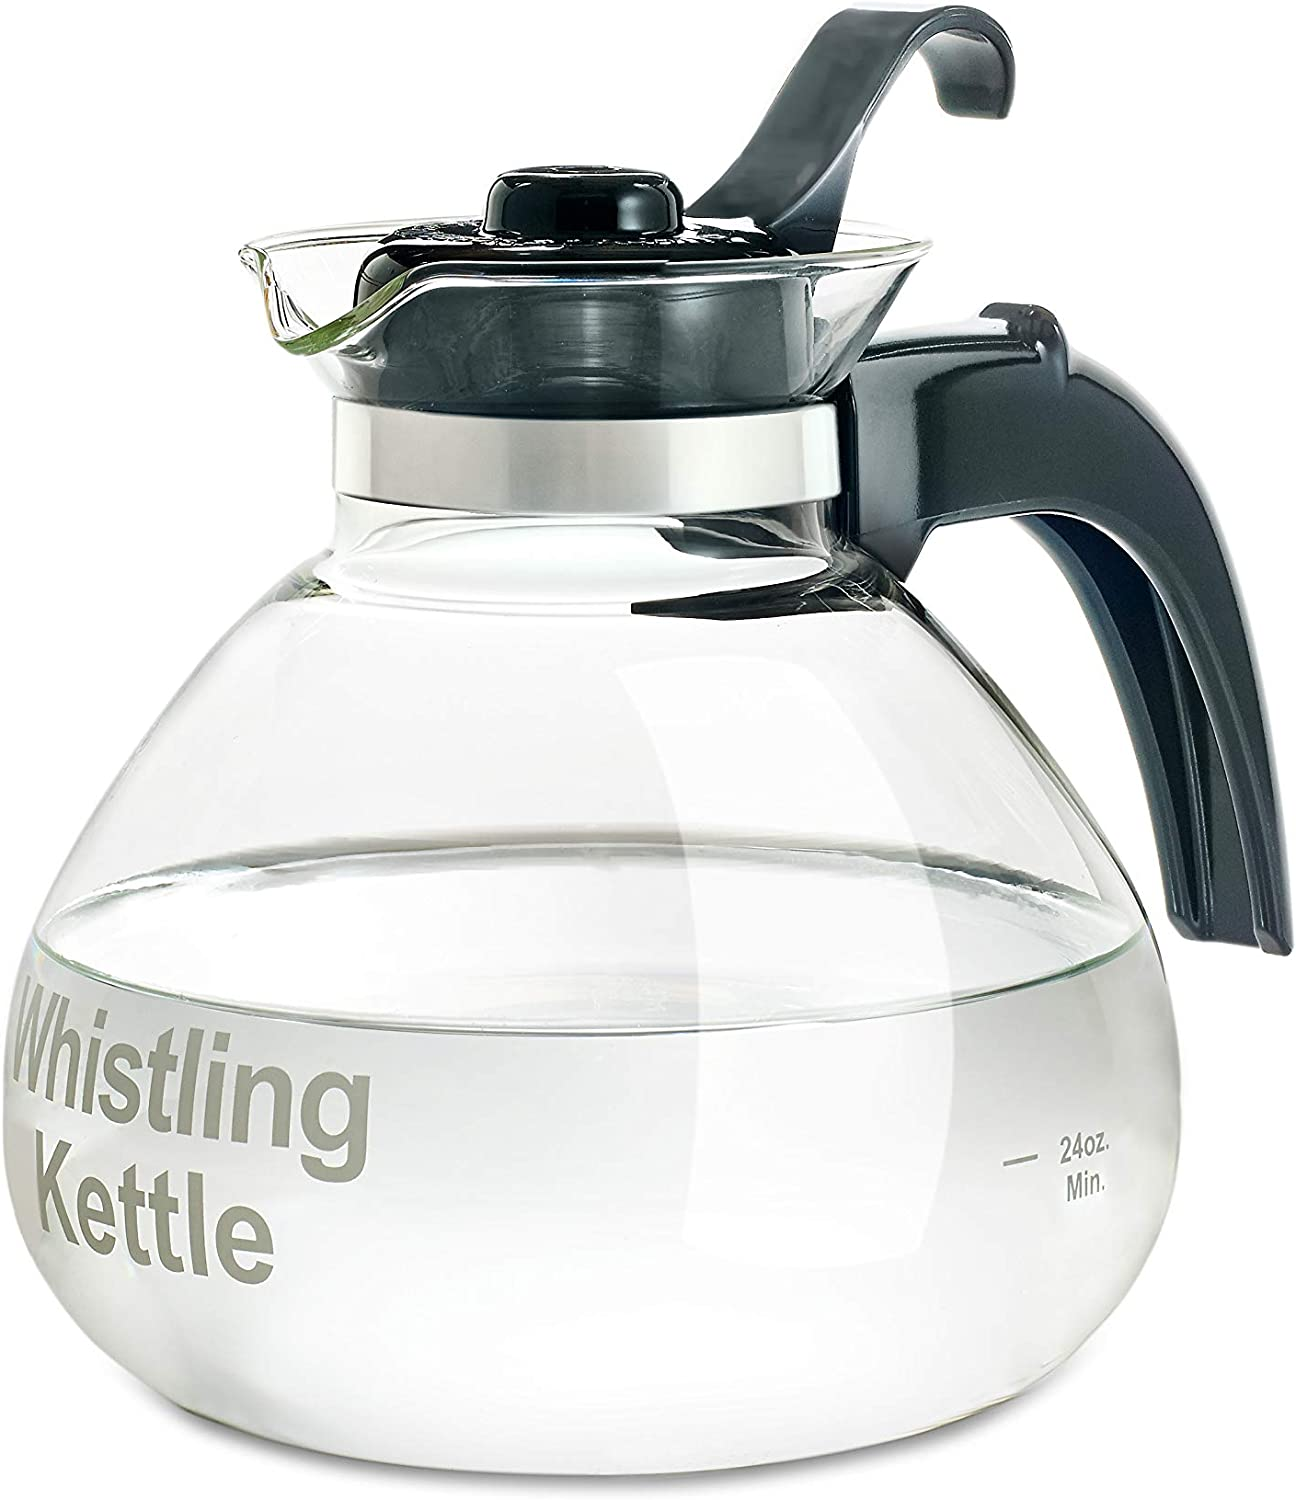 Best Tea Kettles for Gas Stoves